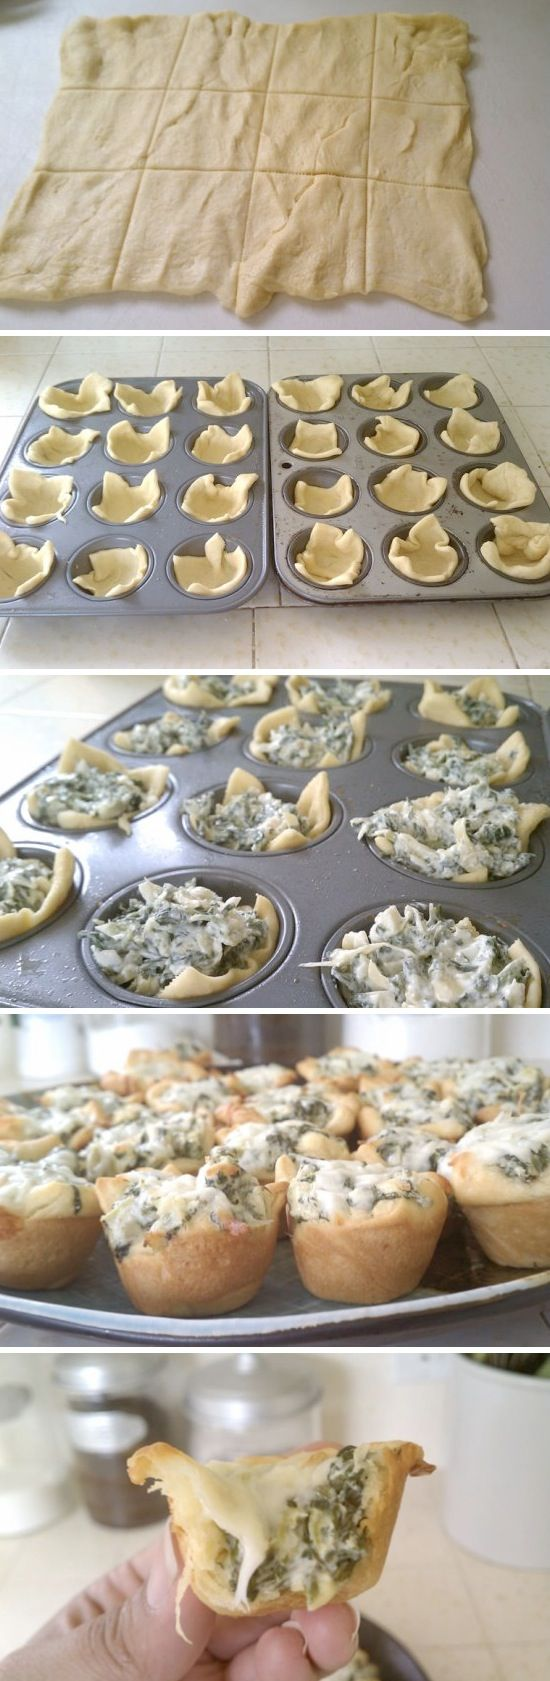 Spinach Artichoke Bites...could work for so many different things...